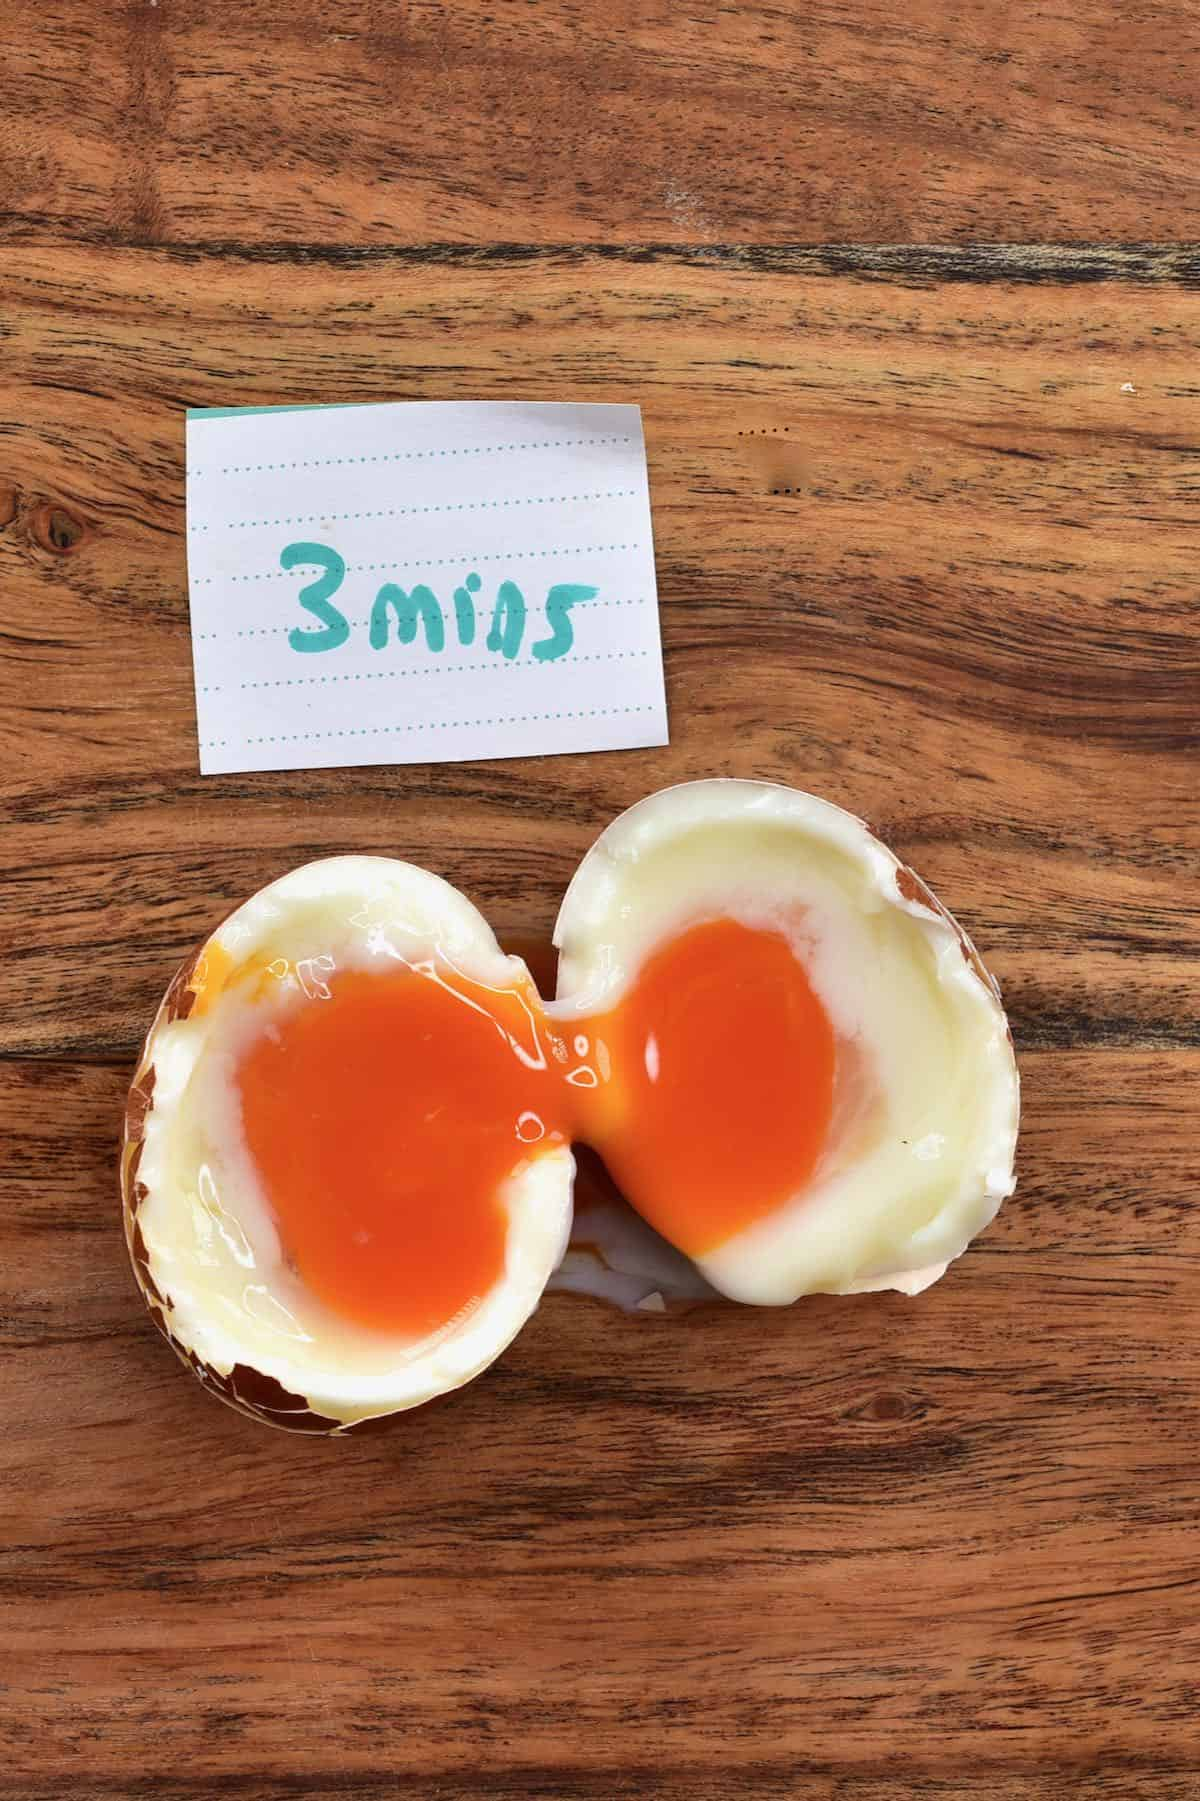 Egg boiled for 3 minutes cut in two